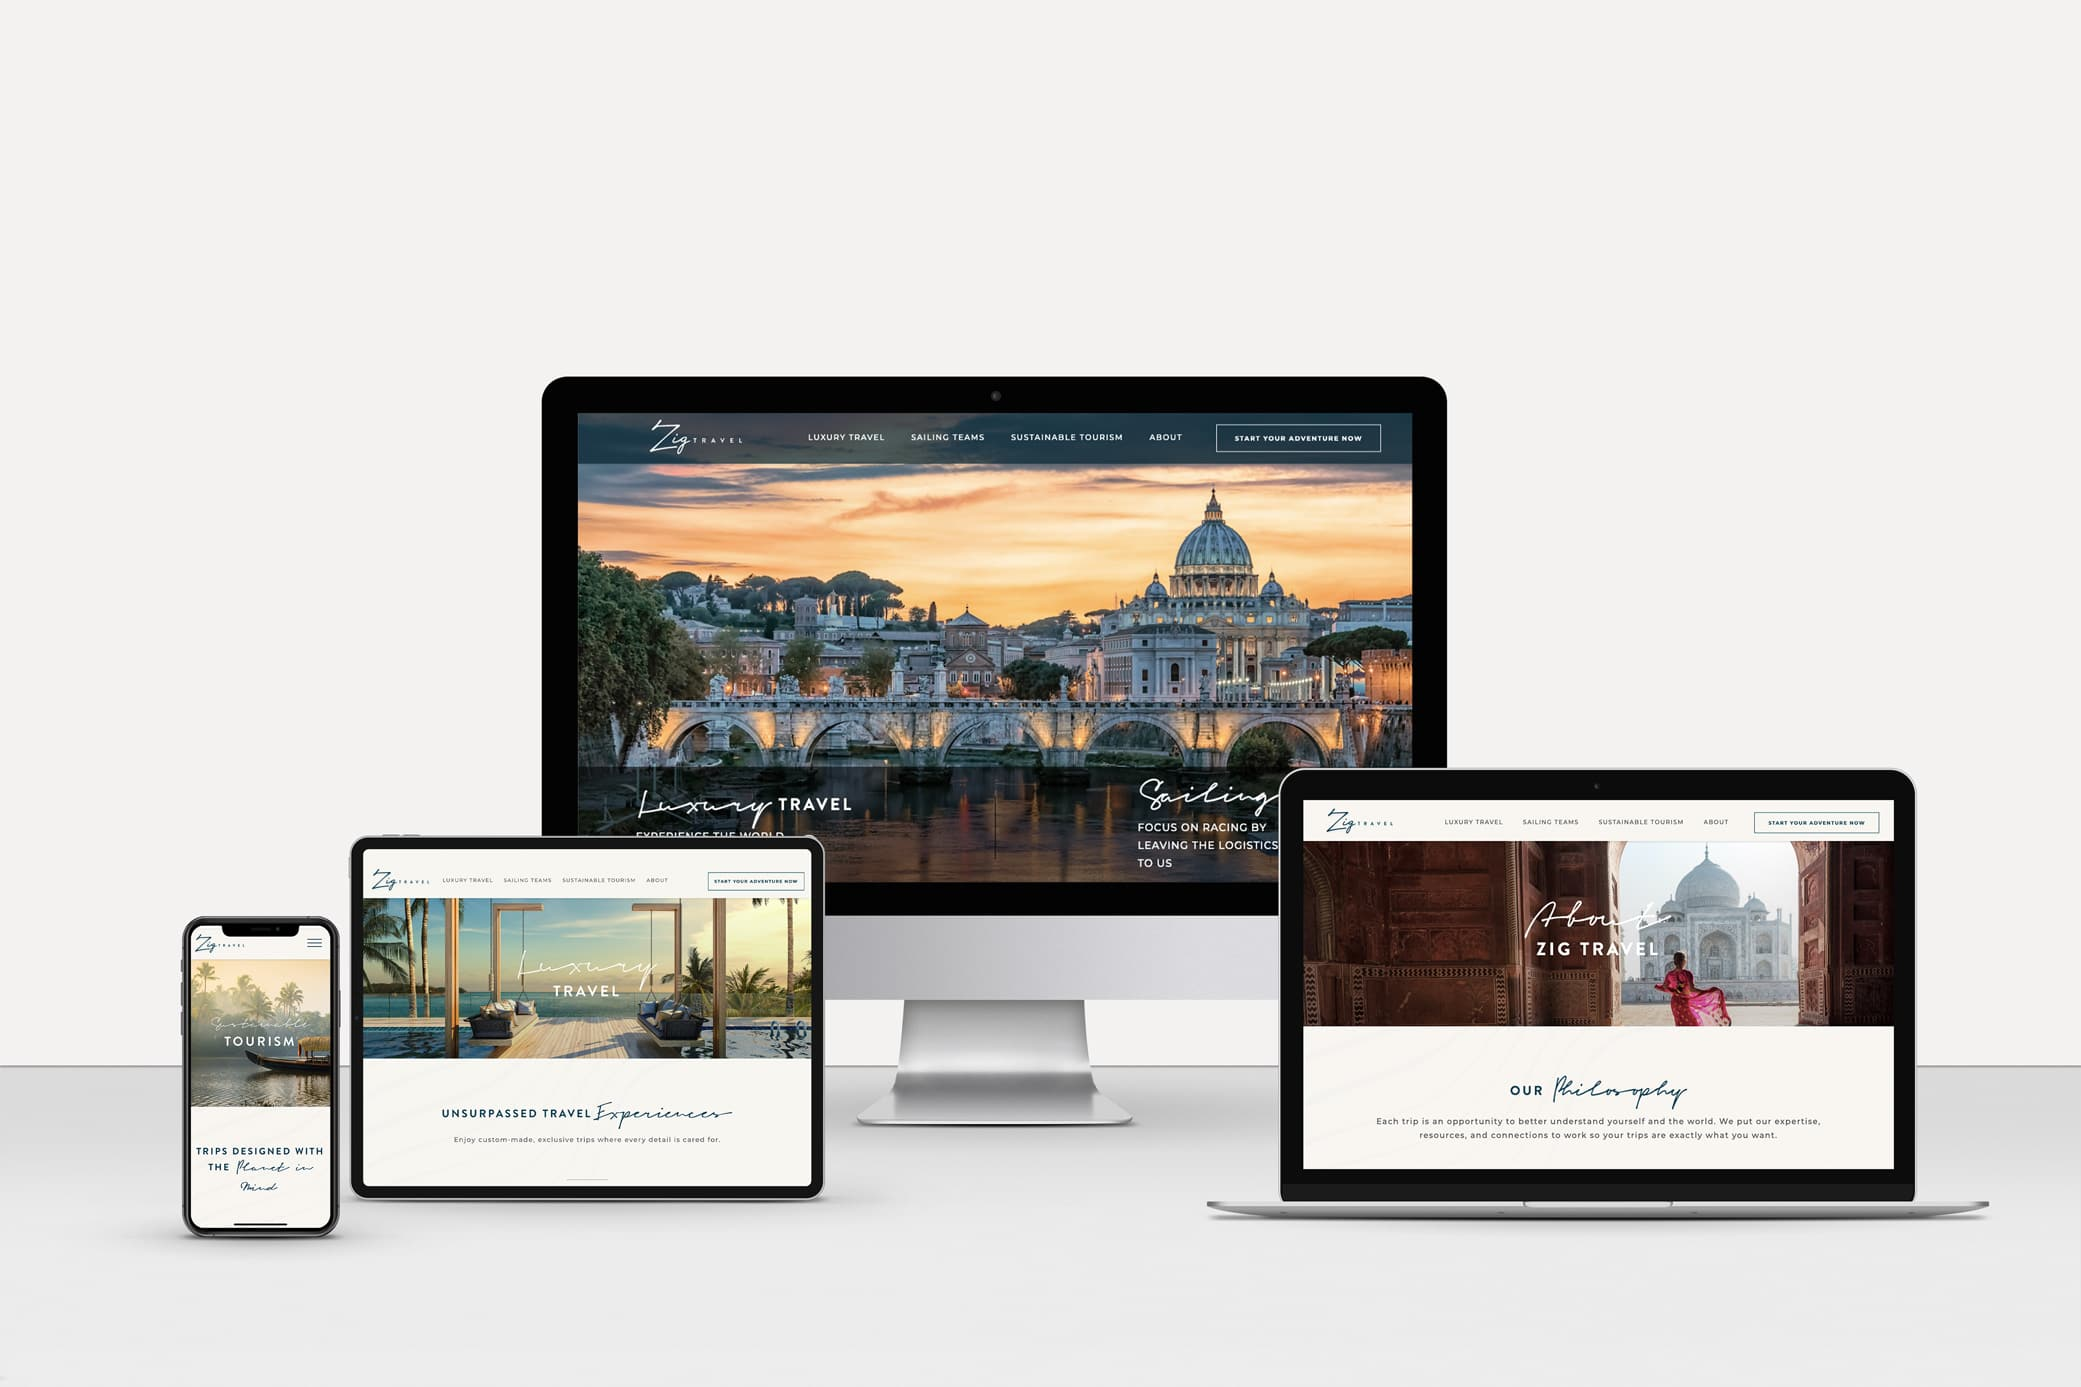 Zig Travel sophisticated website design with lush imagery and separate sections for luxury travel and sailing teams.